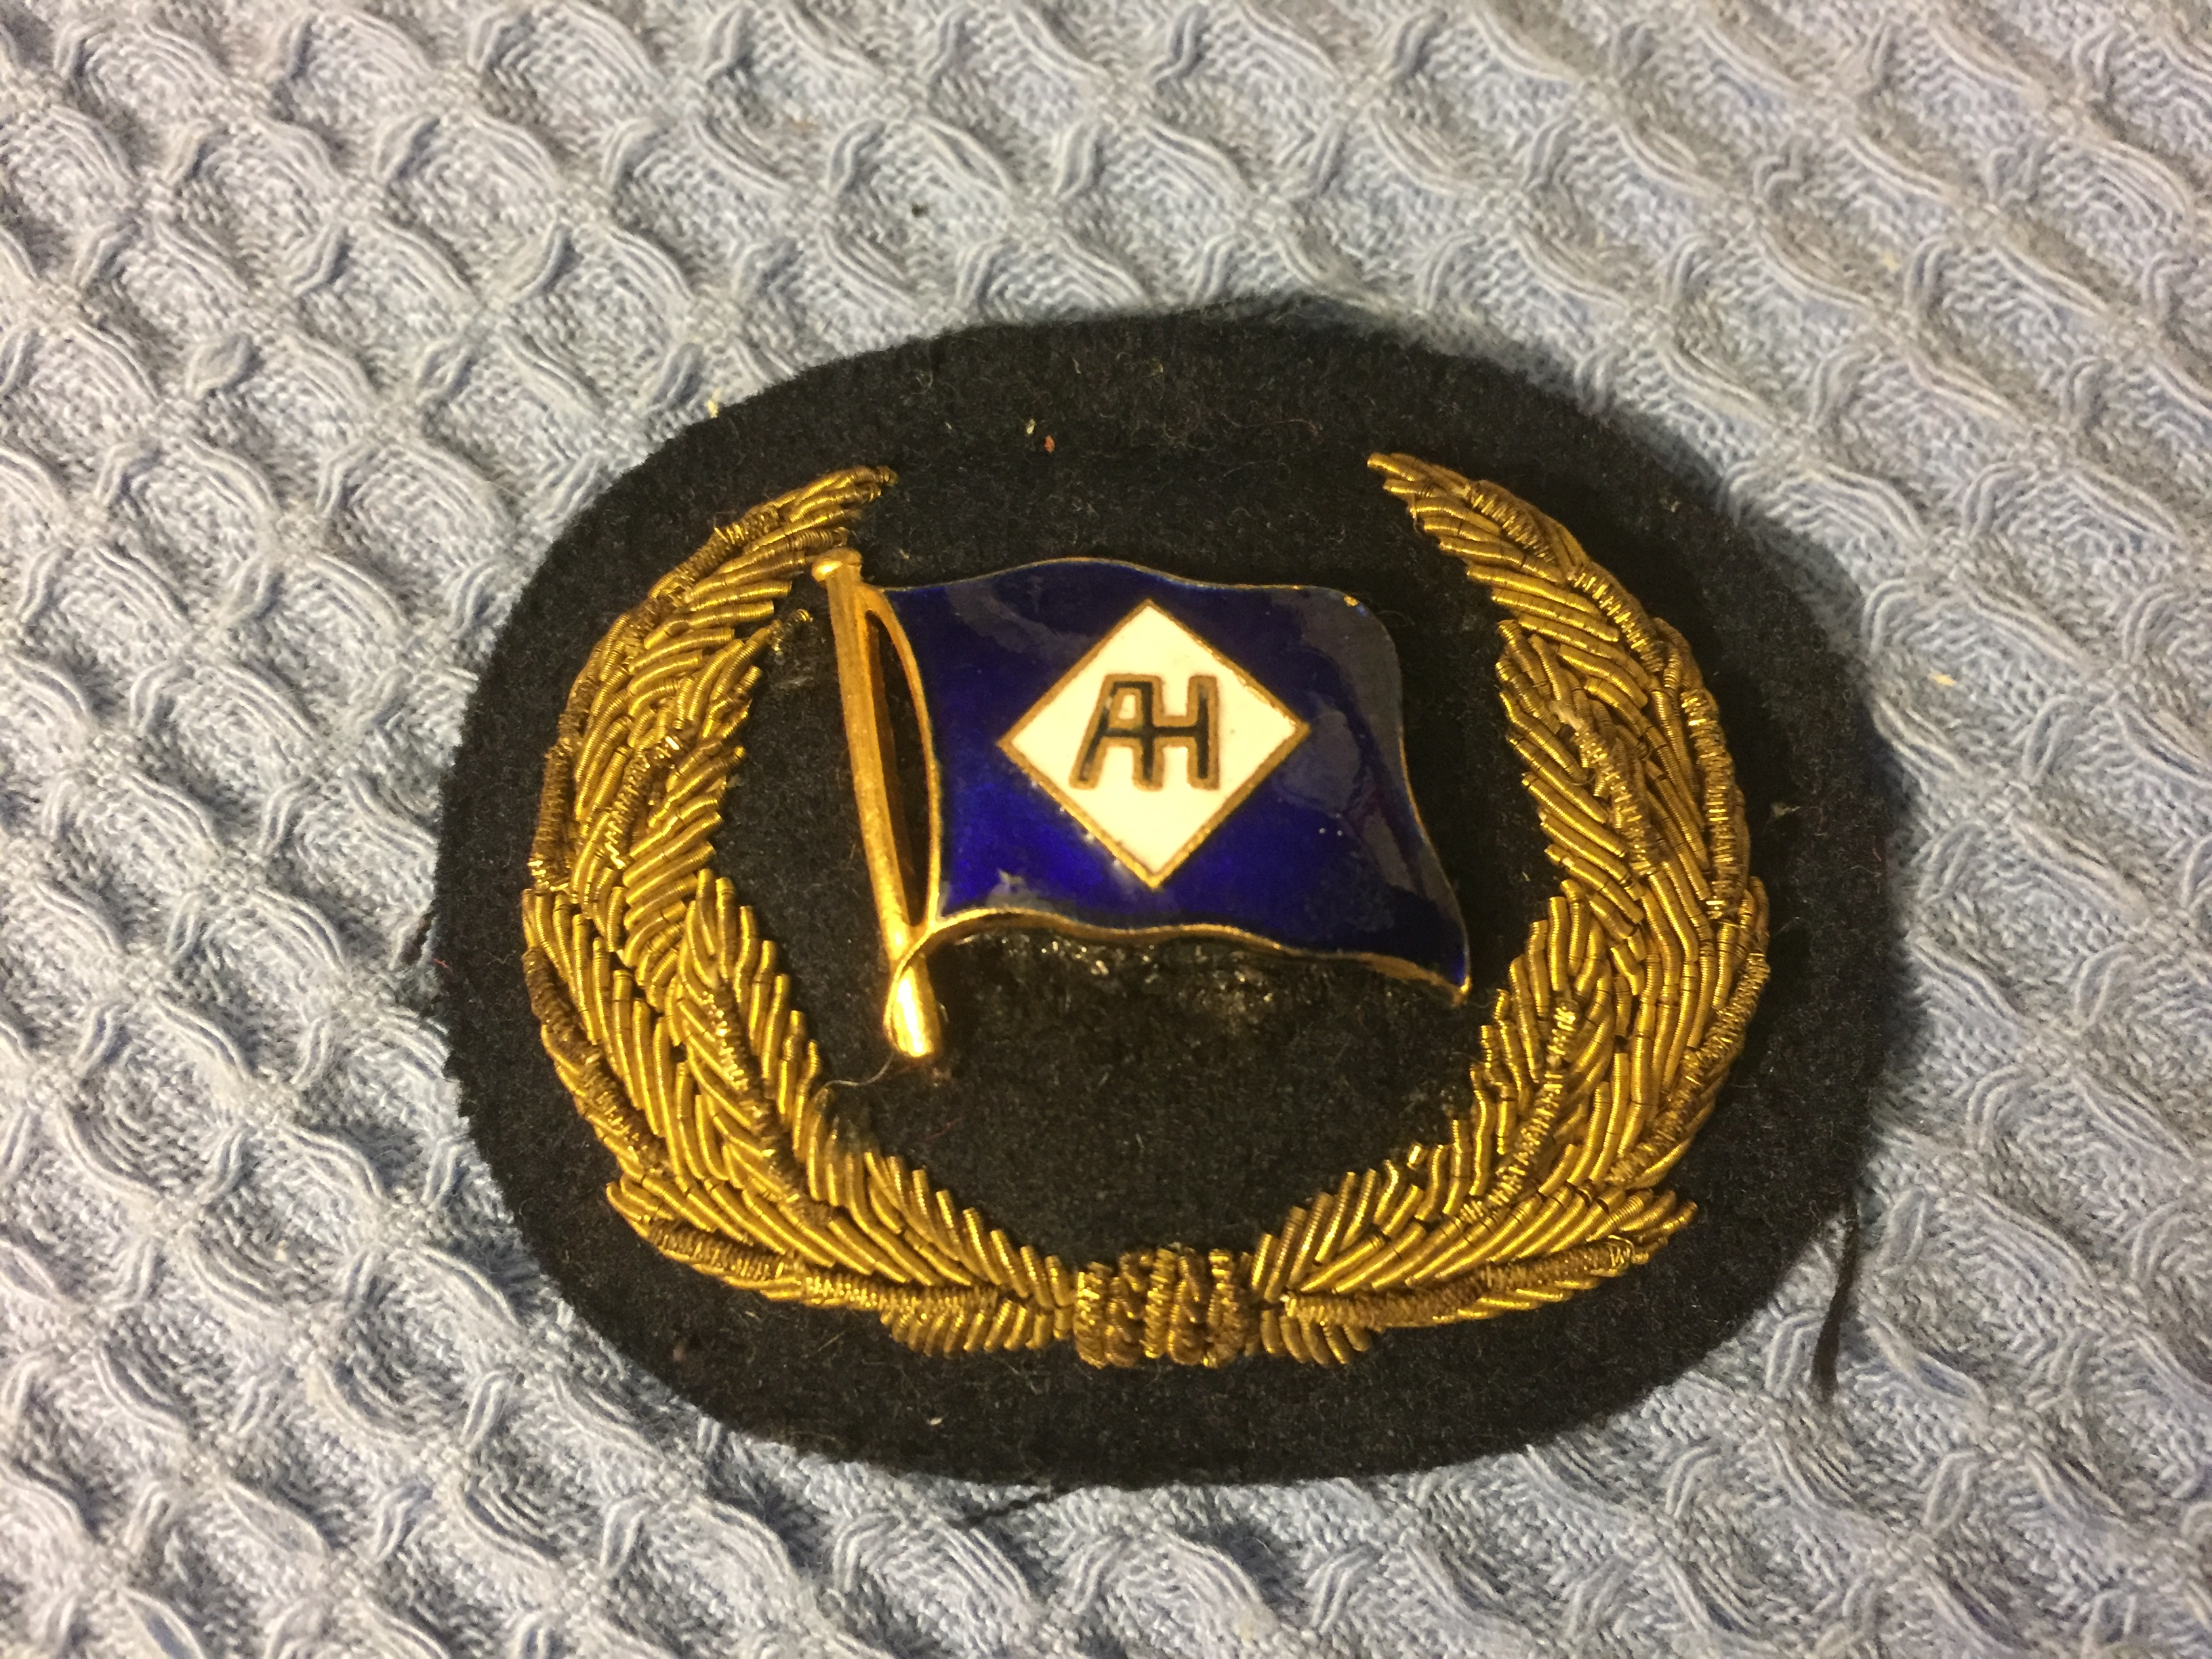 RARE OFFICERS UNIFORM BADGE FROM THE ALFRED HOLT LINE